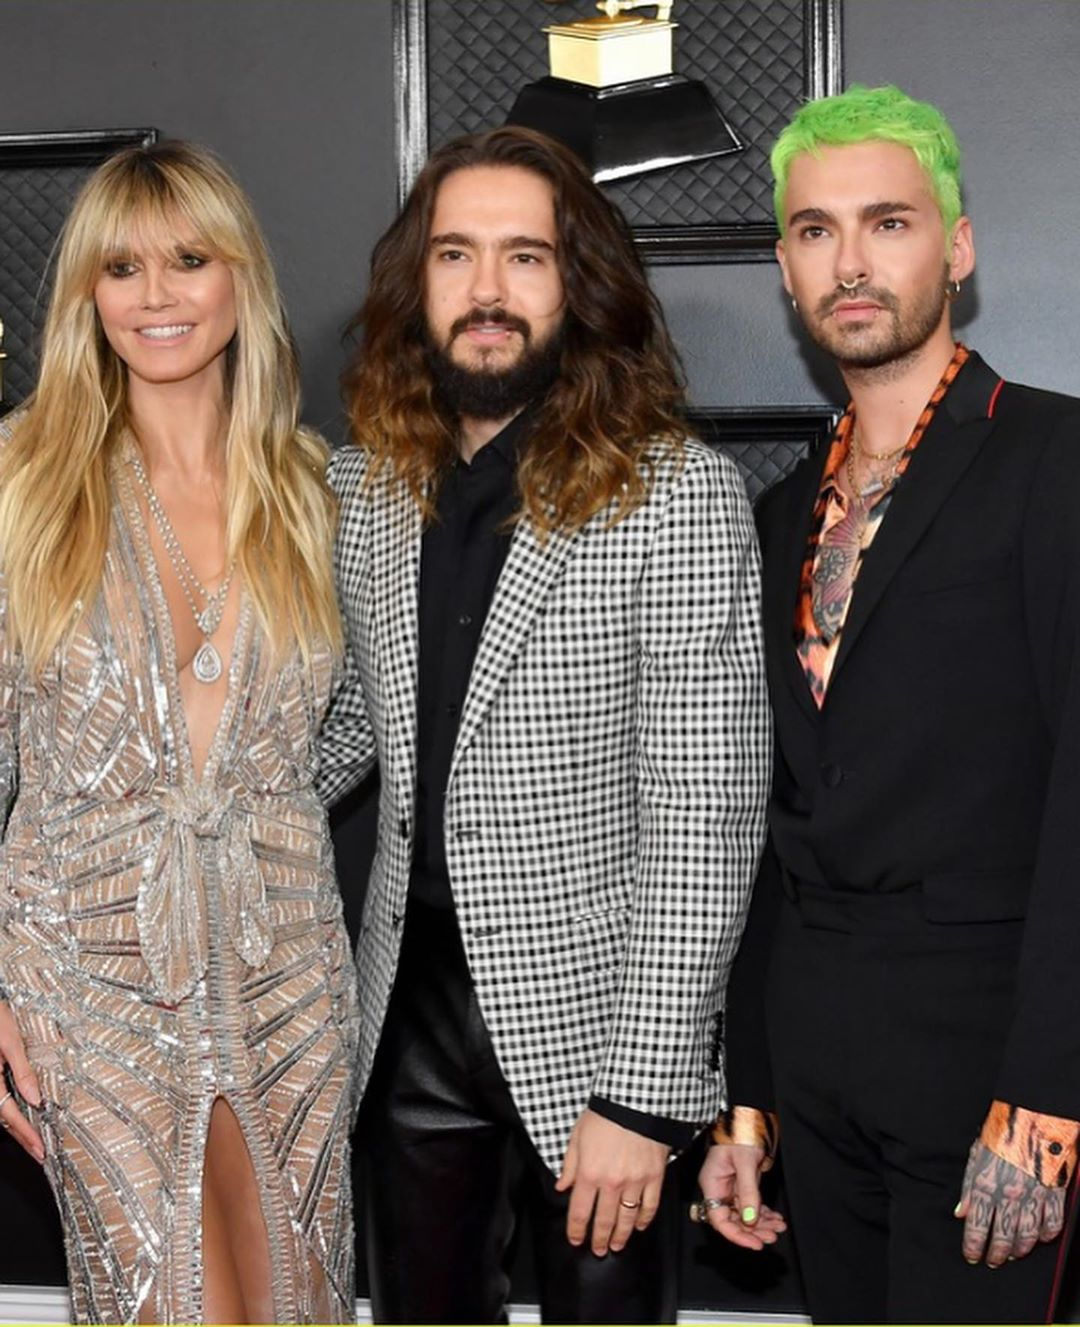 26.01.20 - Bill, Tom and Heidi at Grammys, Staples Centre, LA